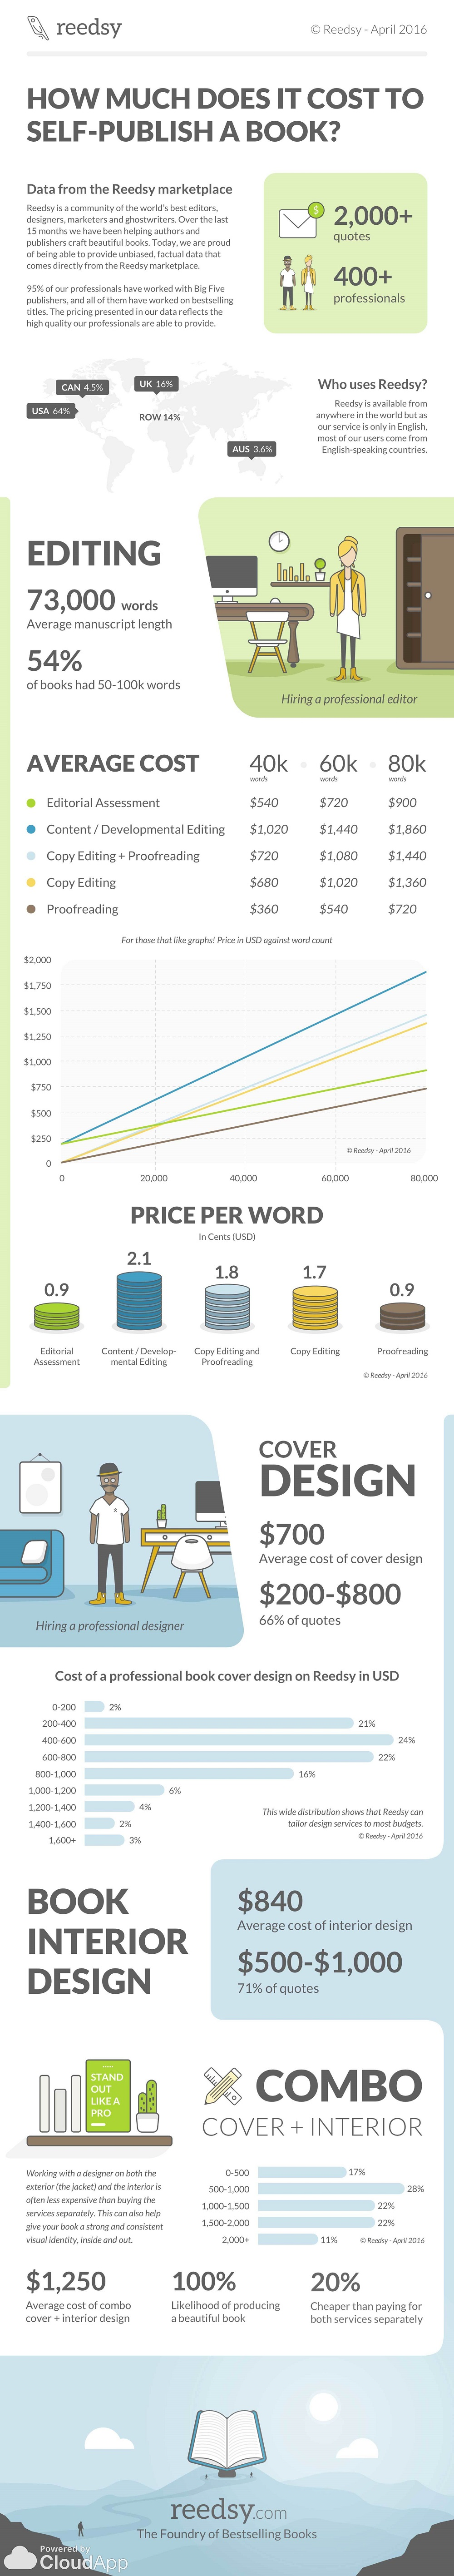 Reedsy Self-Publishing Infographic (GalleyCat)